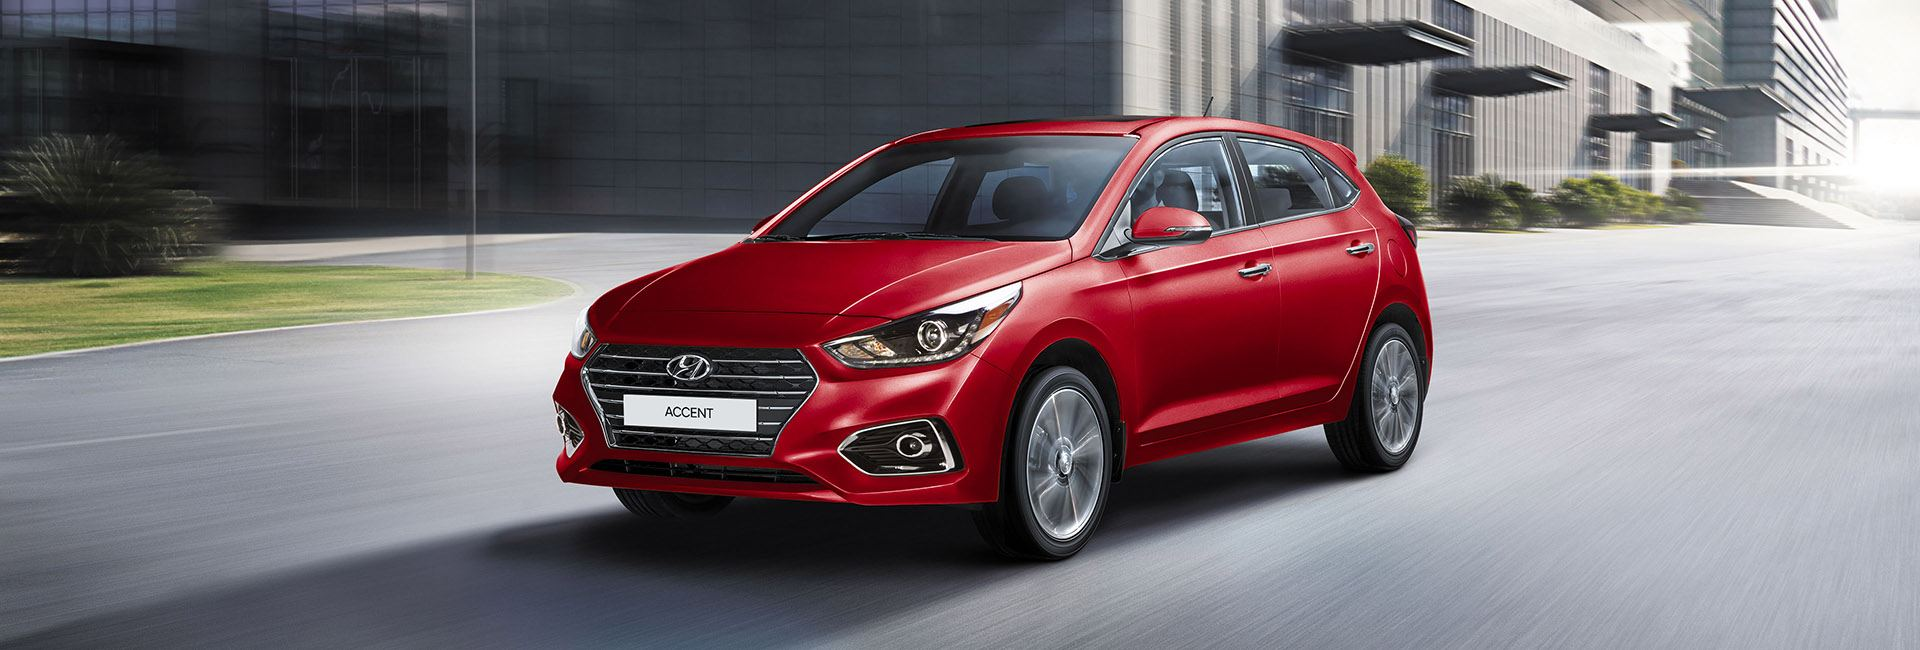 Discover the 2018 Hyundai Accent at Pathway Hyundai in Orleans ON